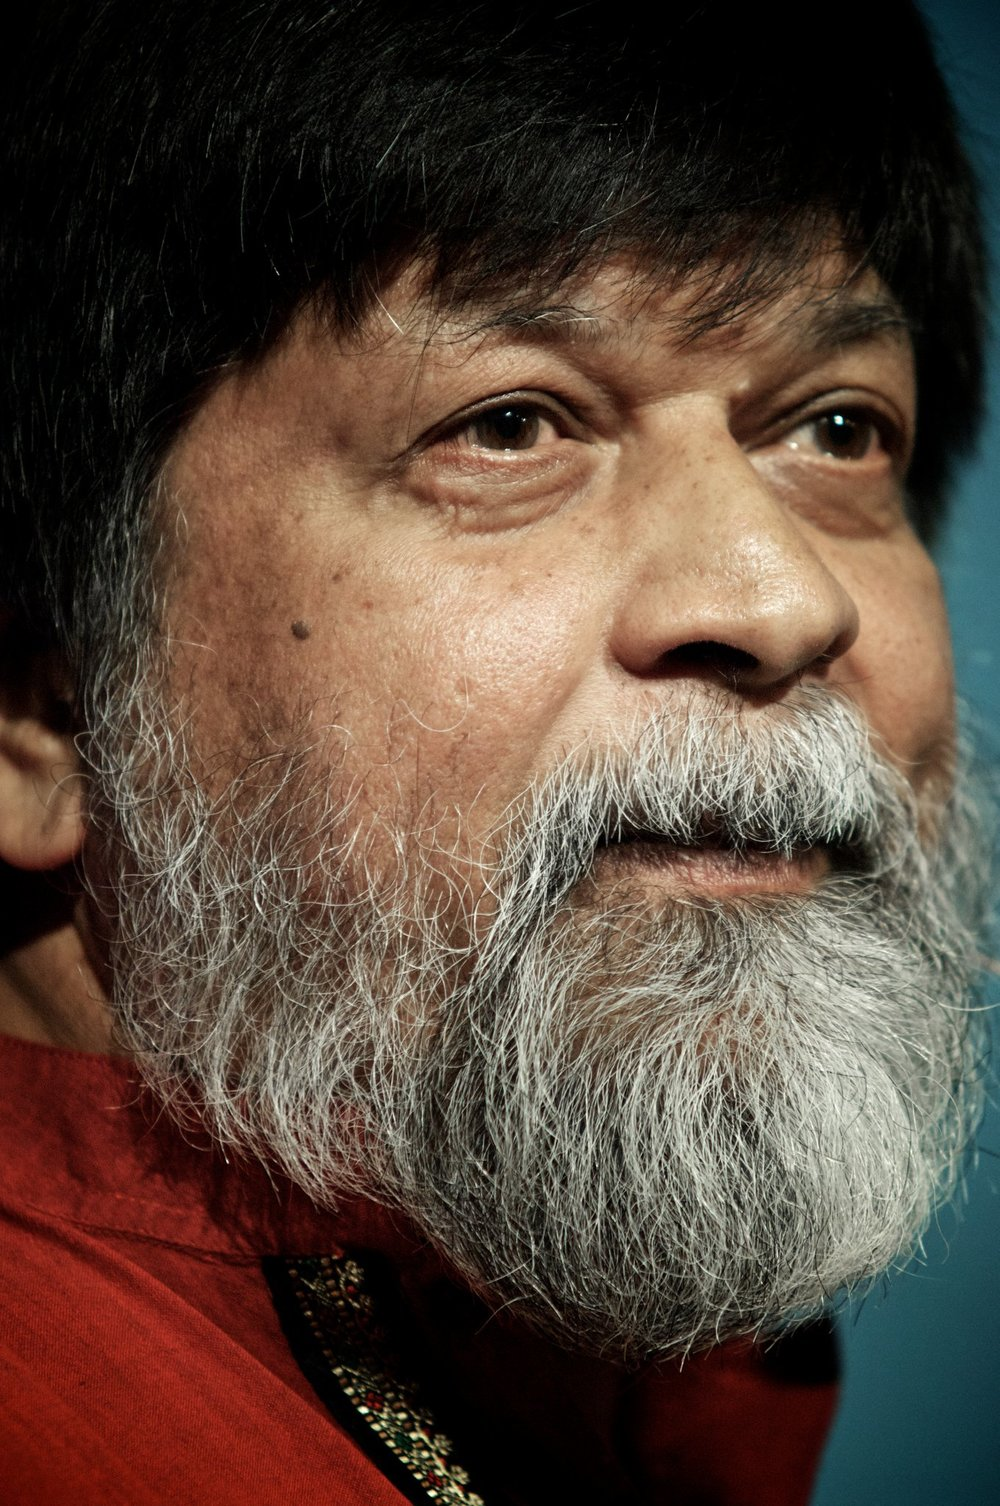 Shahidul Alam , via Wikimedia Commons